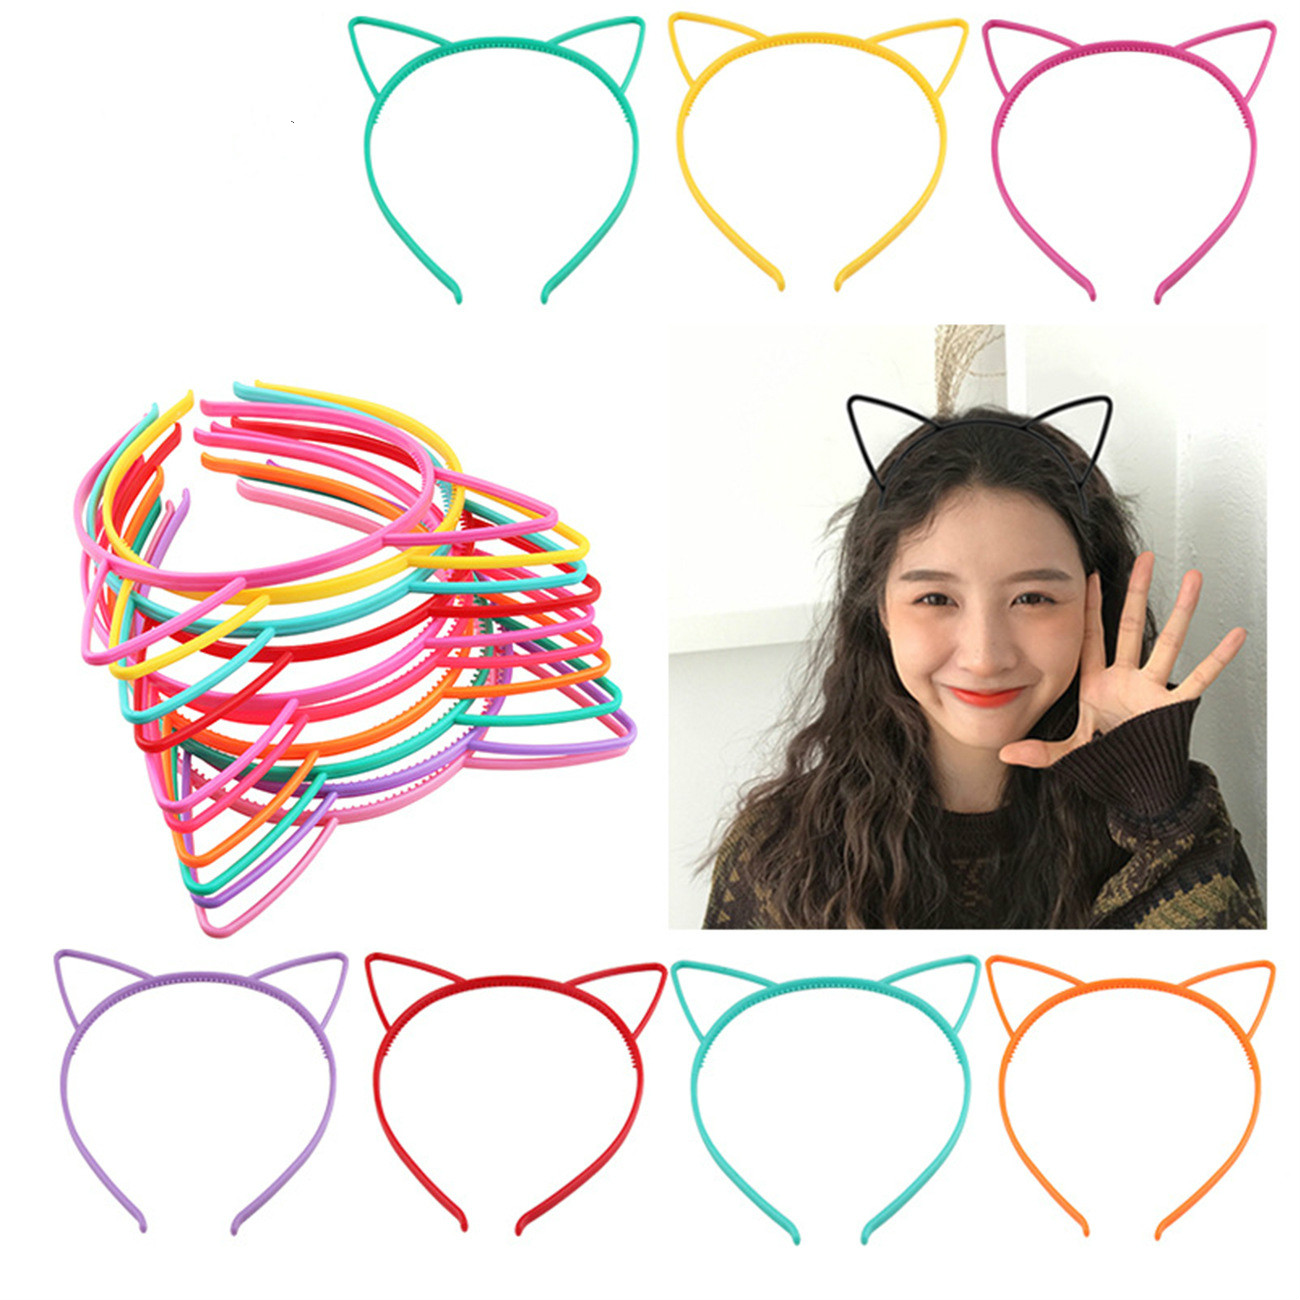 Cat Ears Headbands Crown Tiara Princess With Plastic Animal Hair Band Butterfly Bow Hoop Accessories Boho Headwear